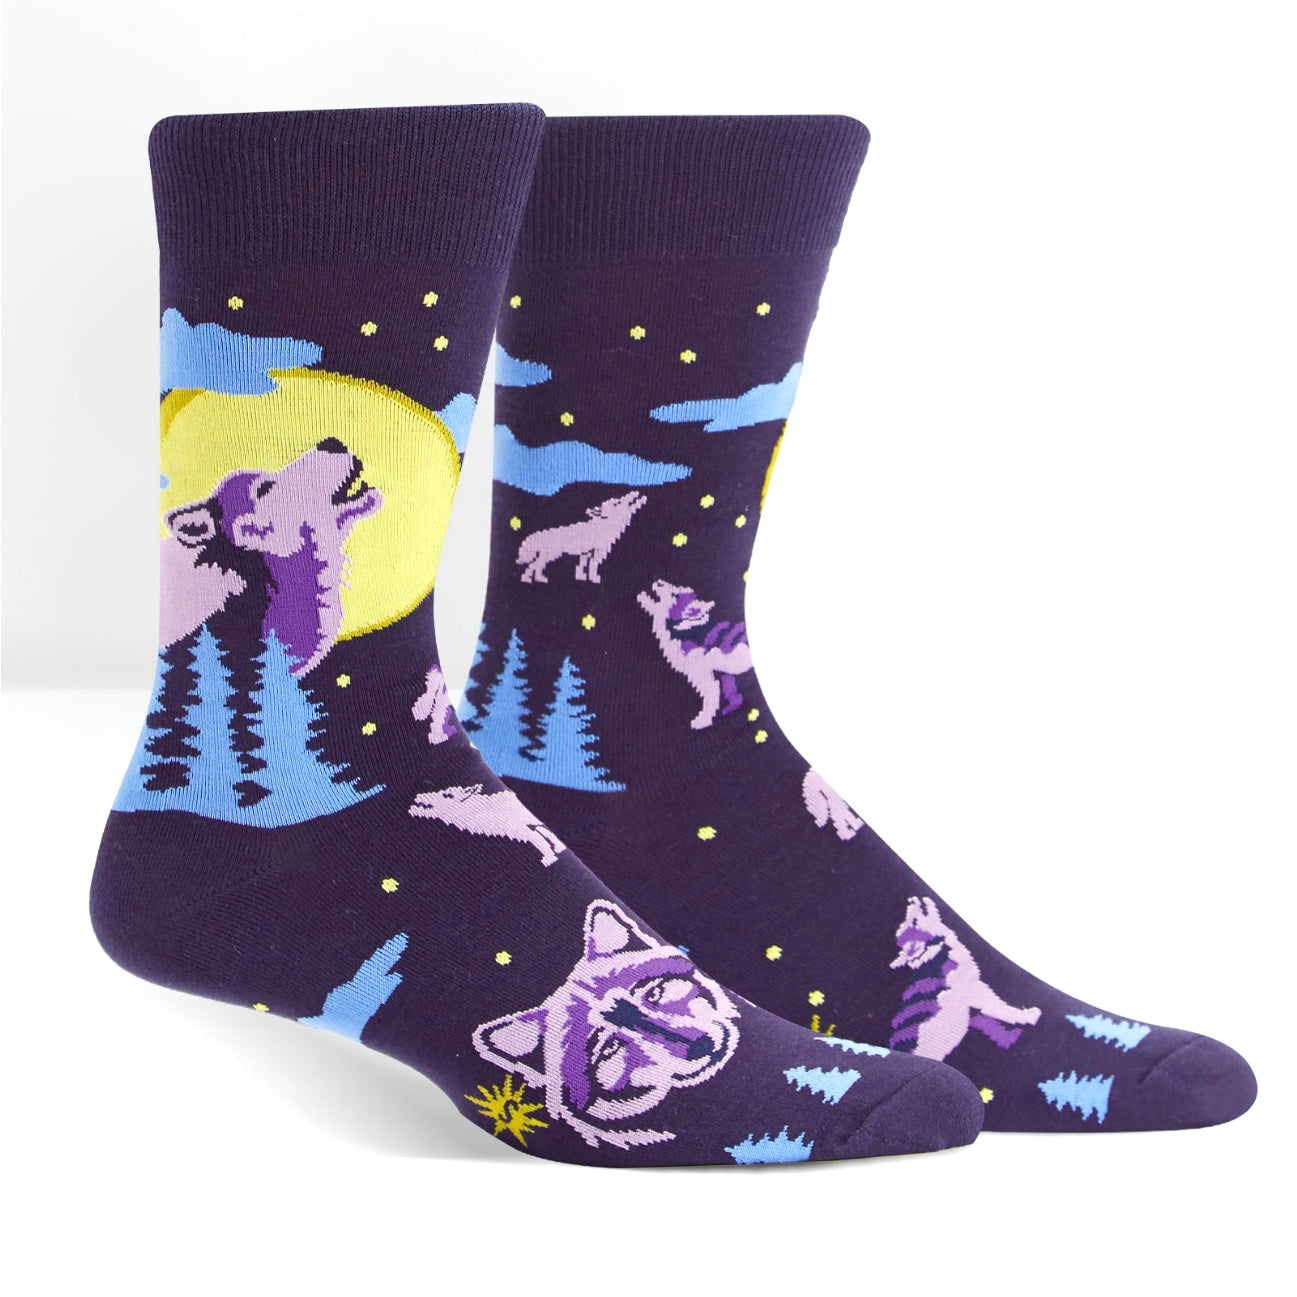 Six Wolf Moon Men's Crew Socks by Sock it to Me